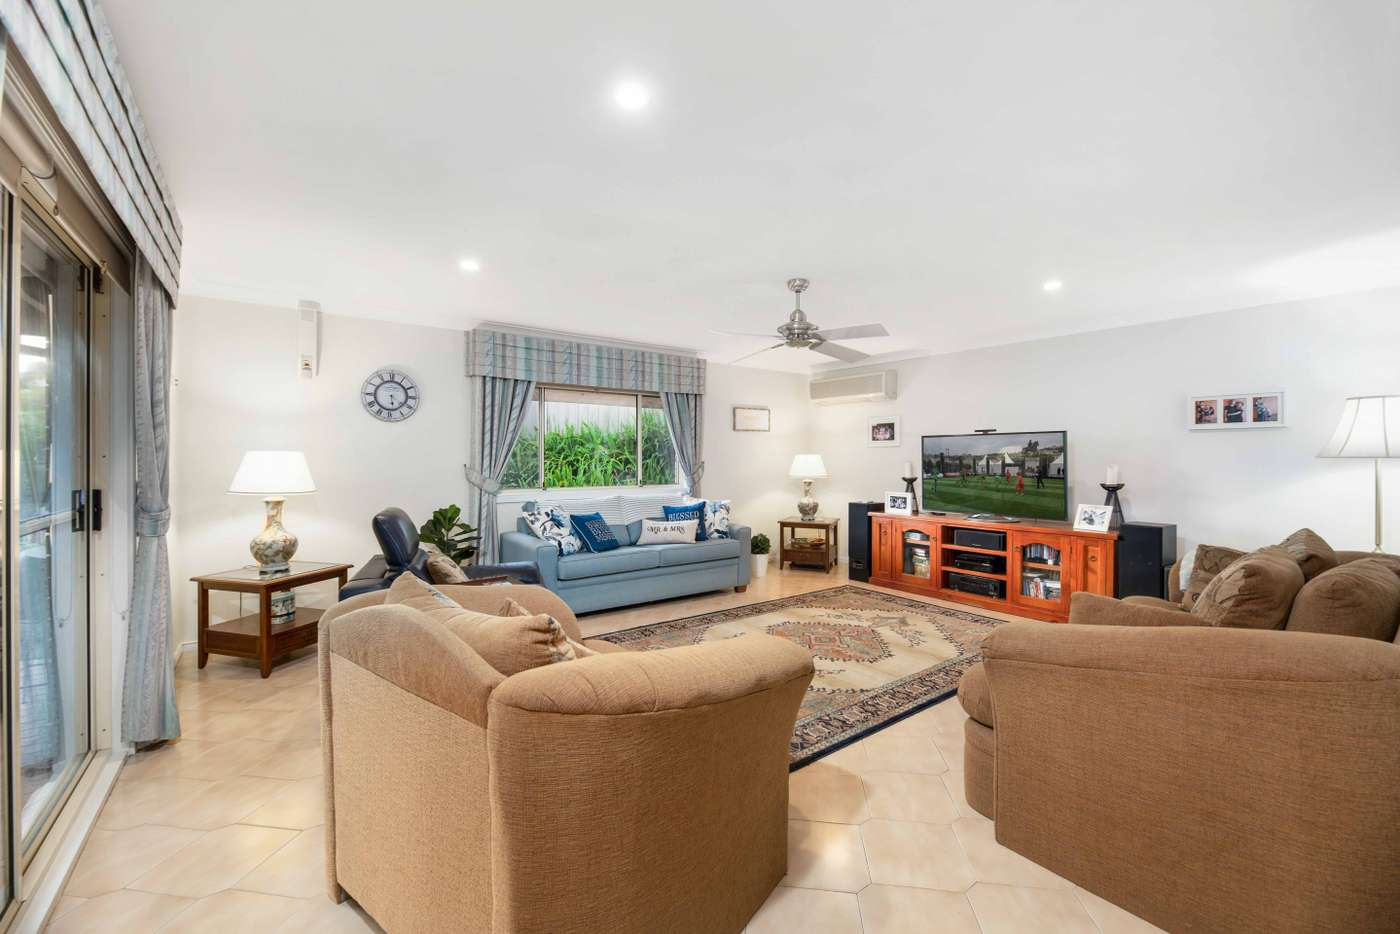 Fifth view of Homely house listing, 10 Carmel Close, Baulkham Hills NSW 2153